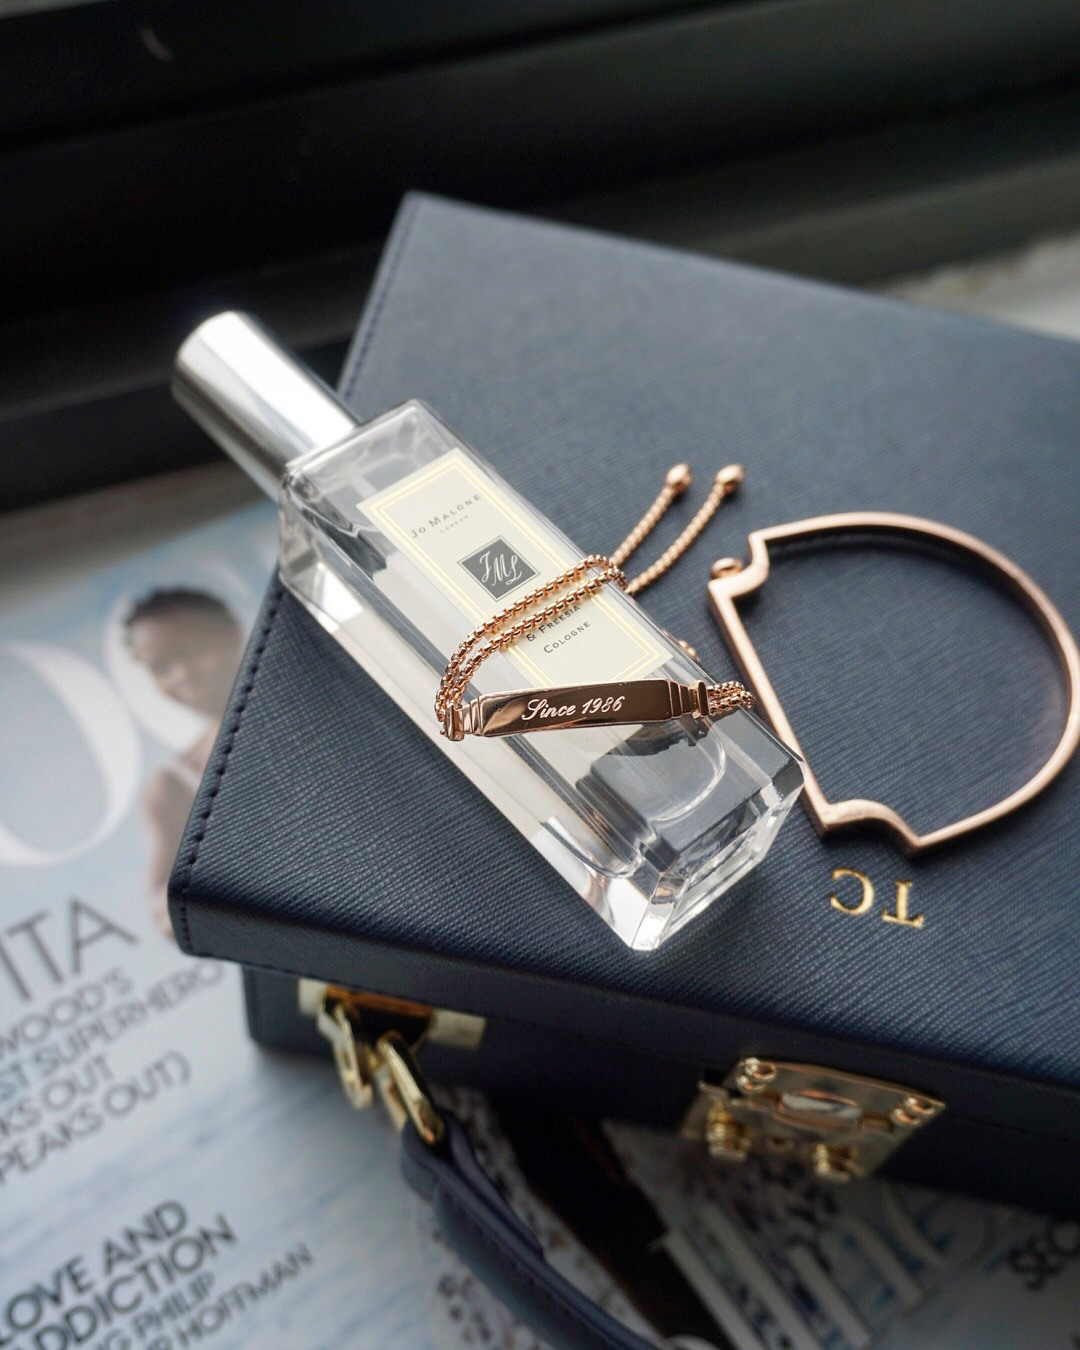 Use  MAY15MV  to get 15% off your order on www.monicavinader.com (valid from May 1 to 7).